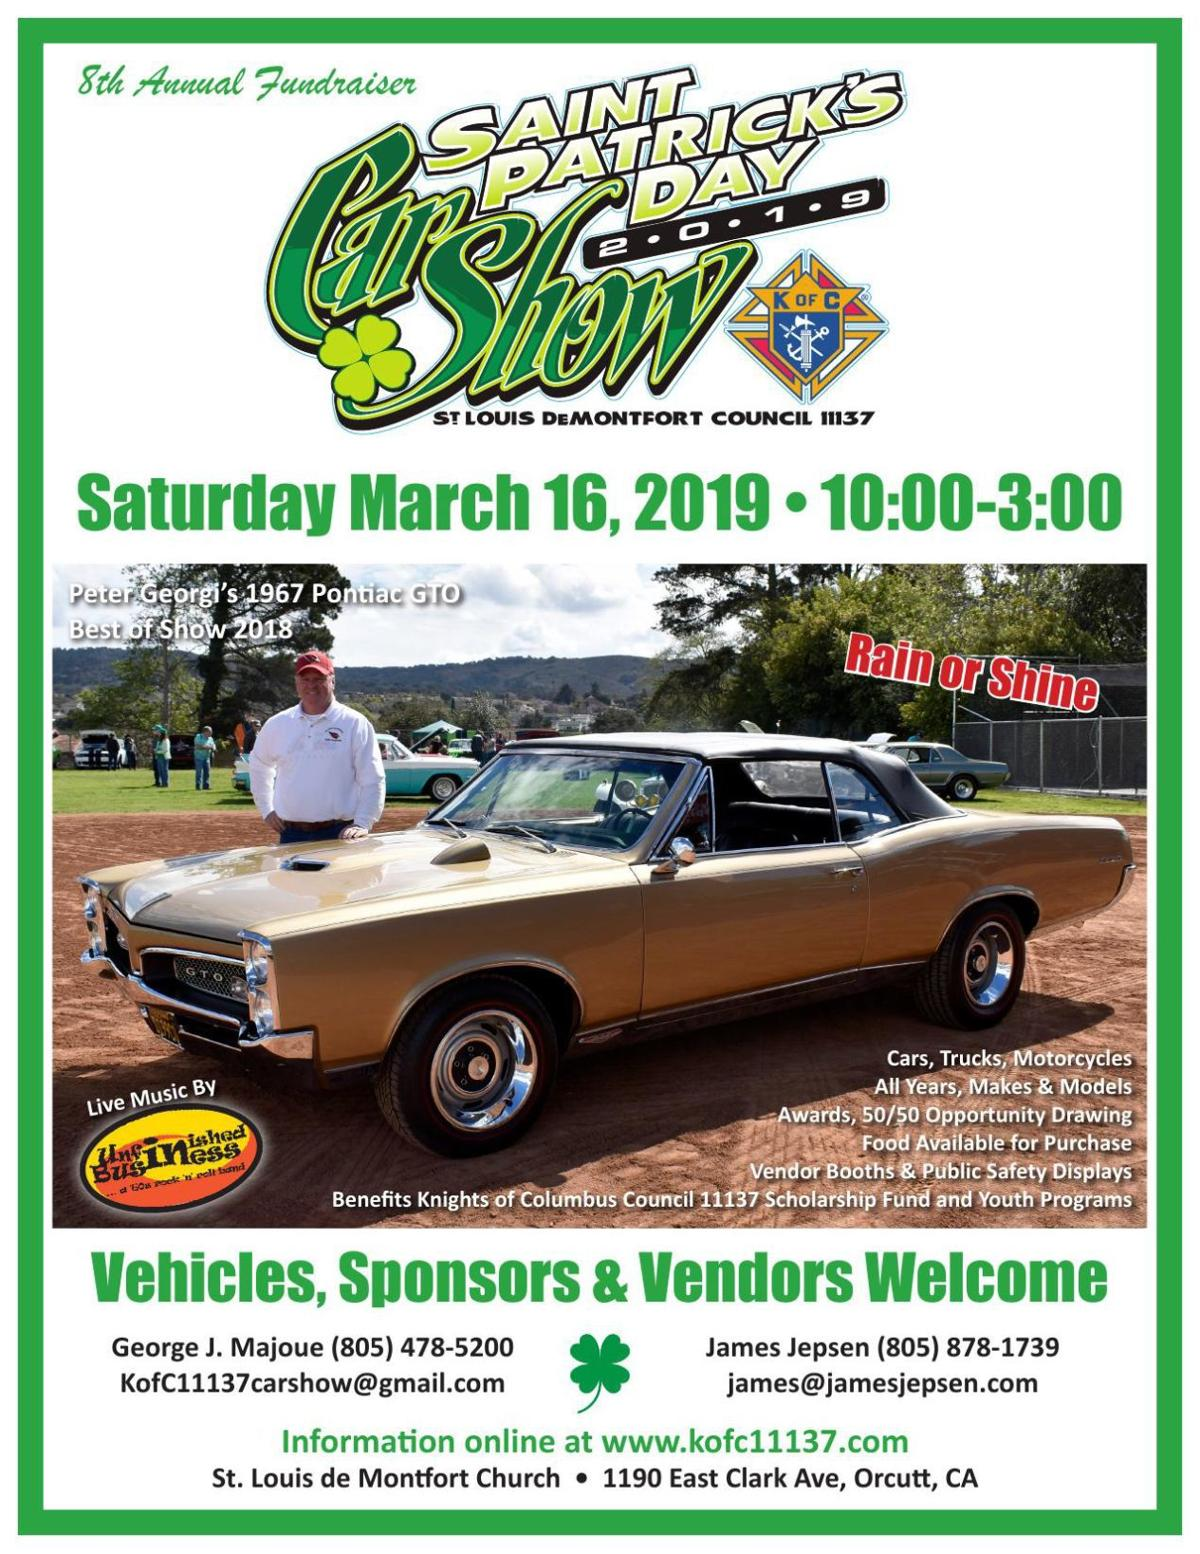 St. Patrick's Day Car Show